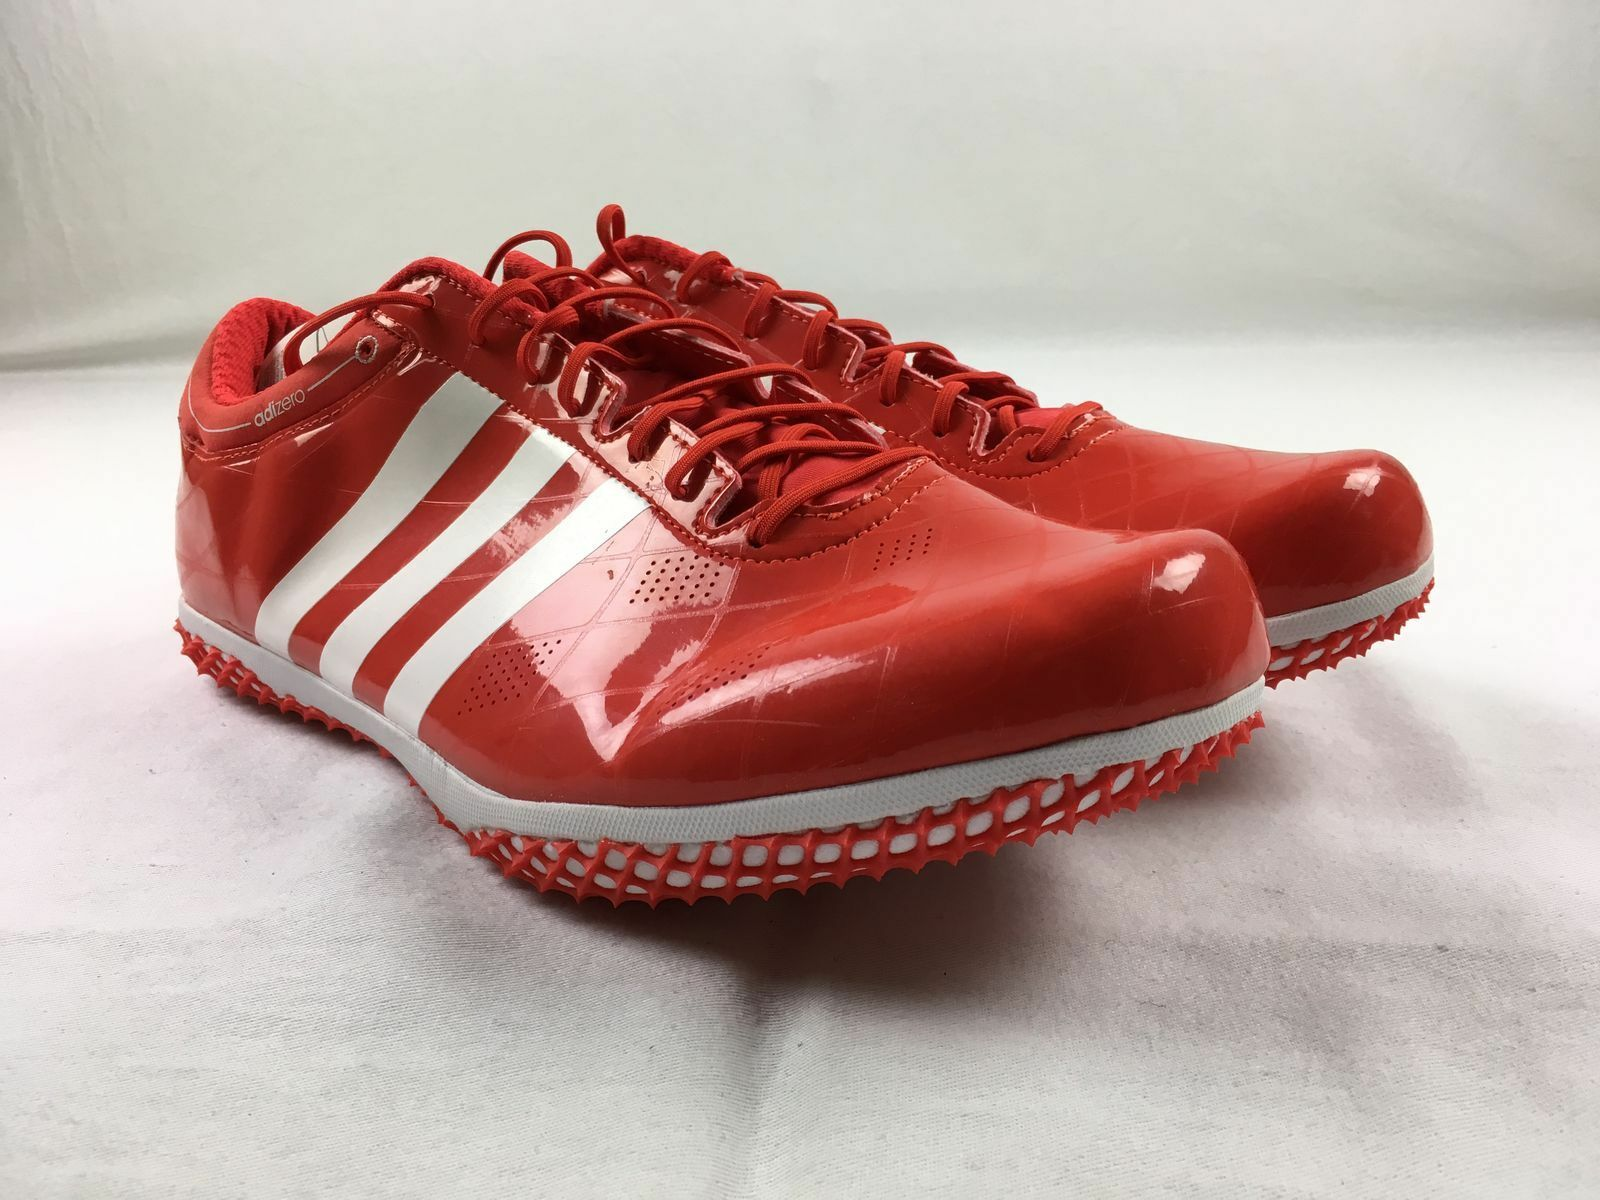 NEW adidas adizero HJ FL - Red Cleats (Men's Multiple Sizes)